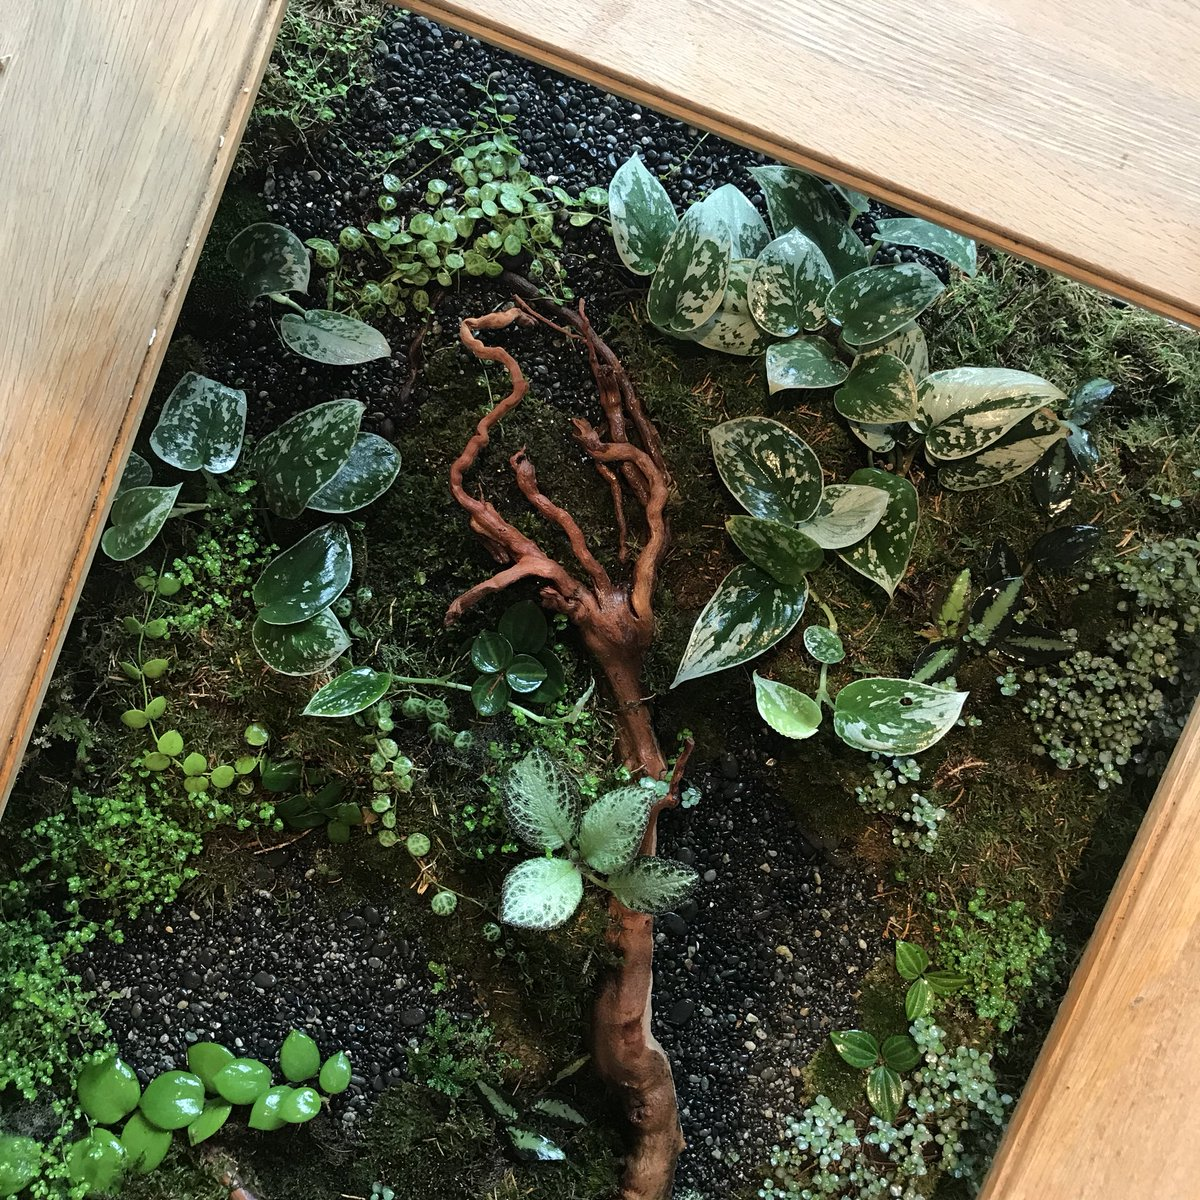 James Wong On Twitter So My Coffee Tablearium Experiment Is Still Going Strong Moss Seems To Be Settling In Nicely Mosslove